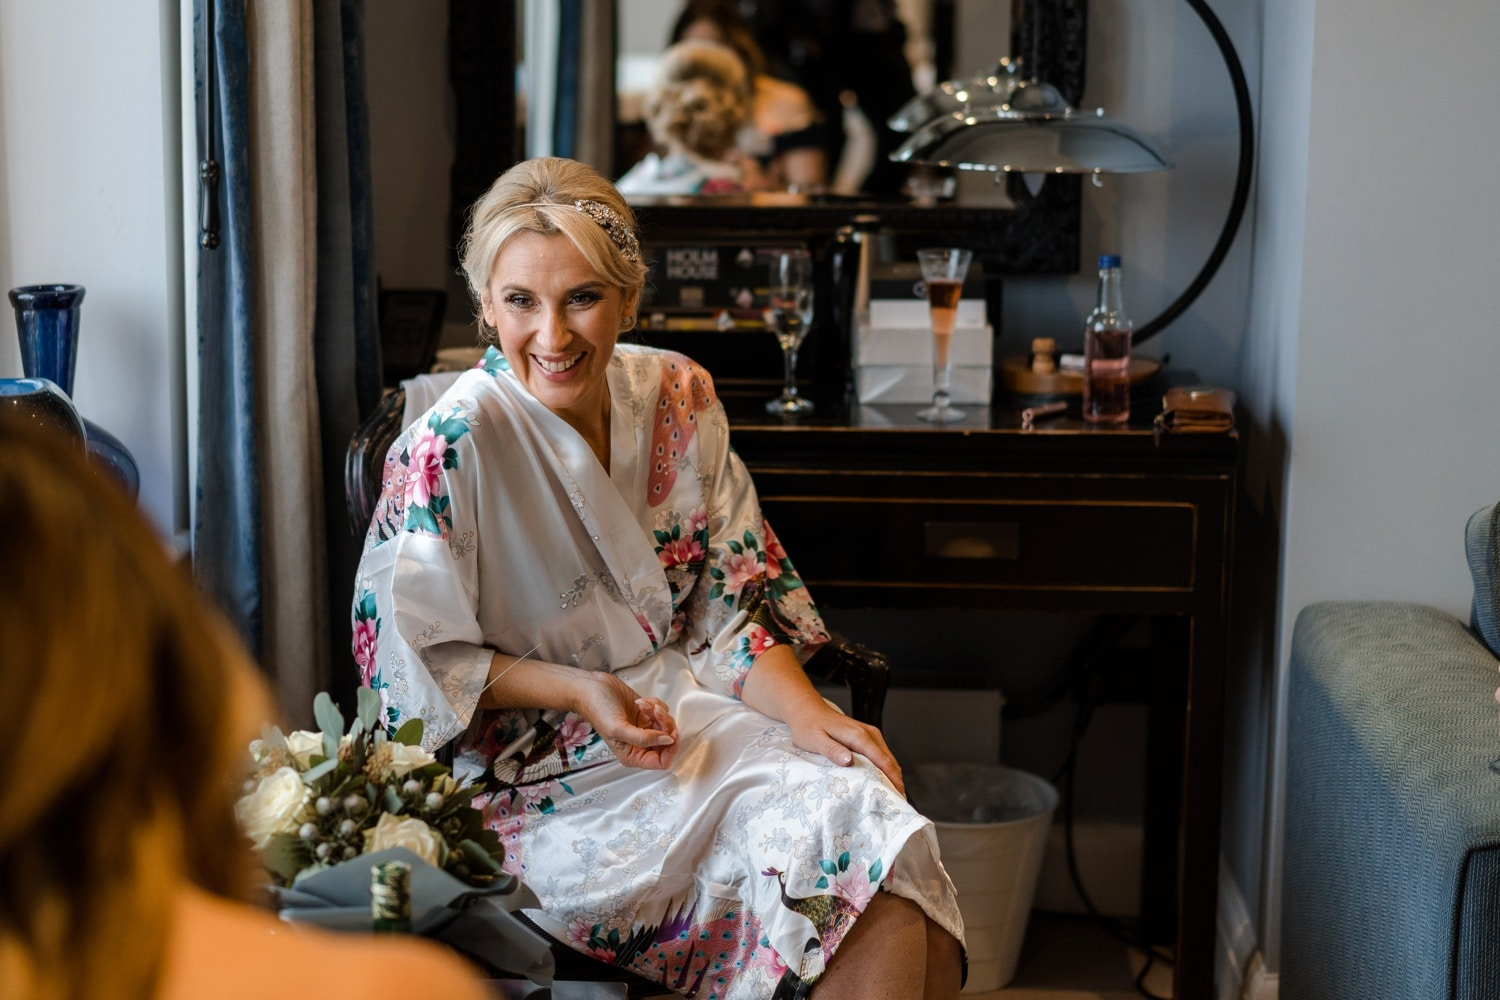 Bridal preparations at Holm House in Penarth, South Wales